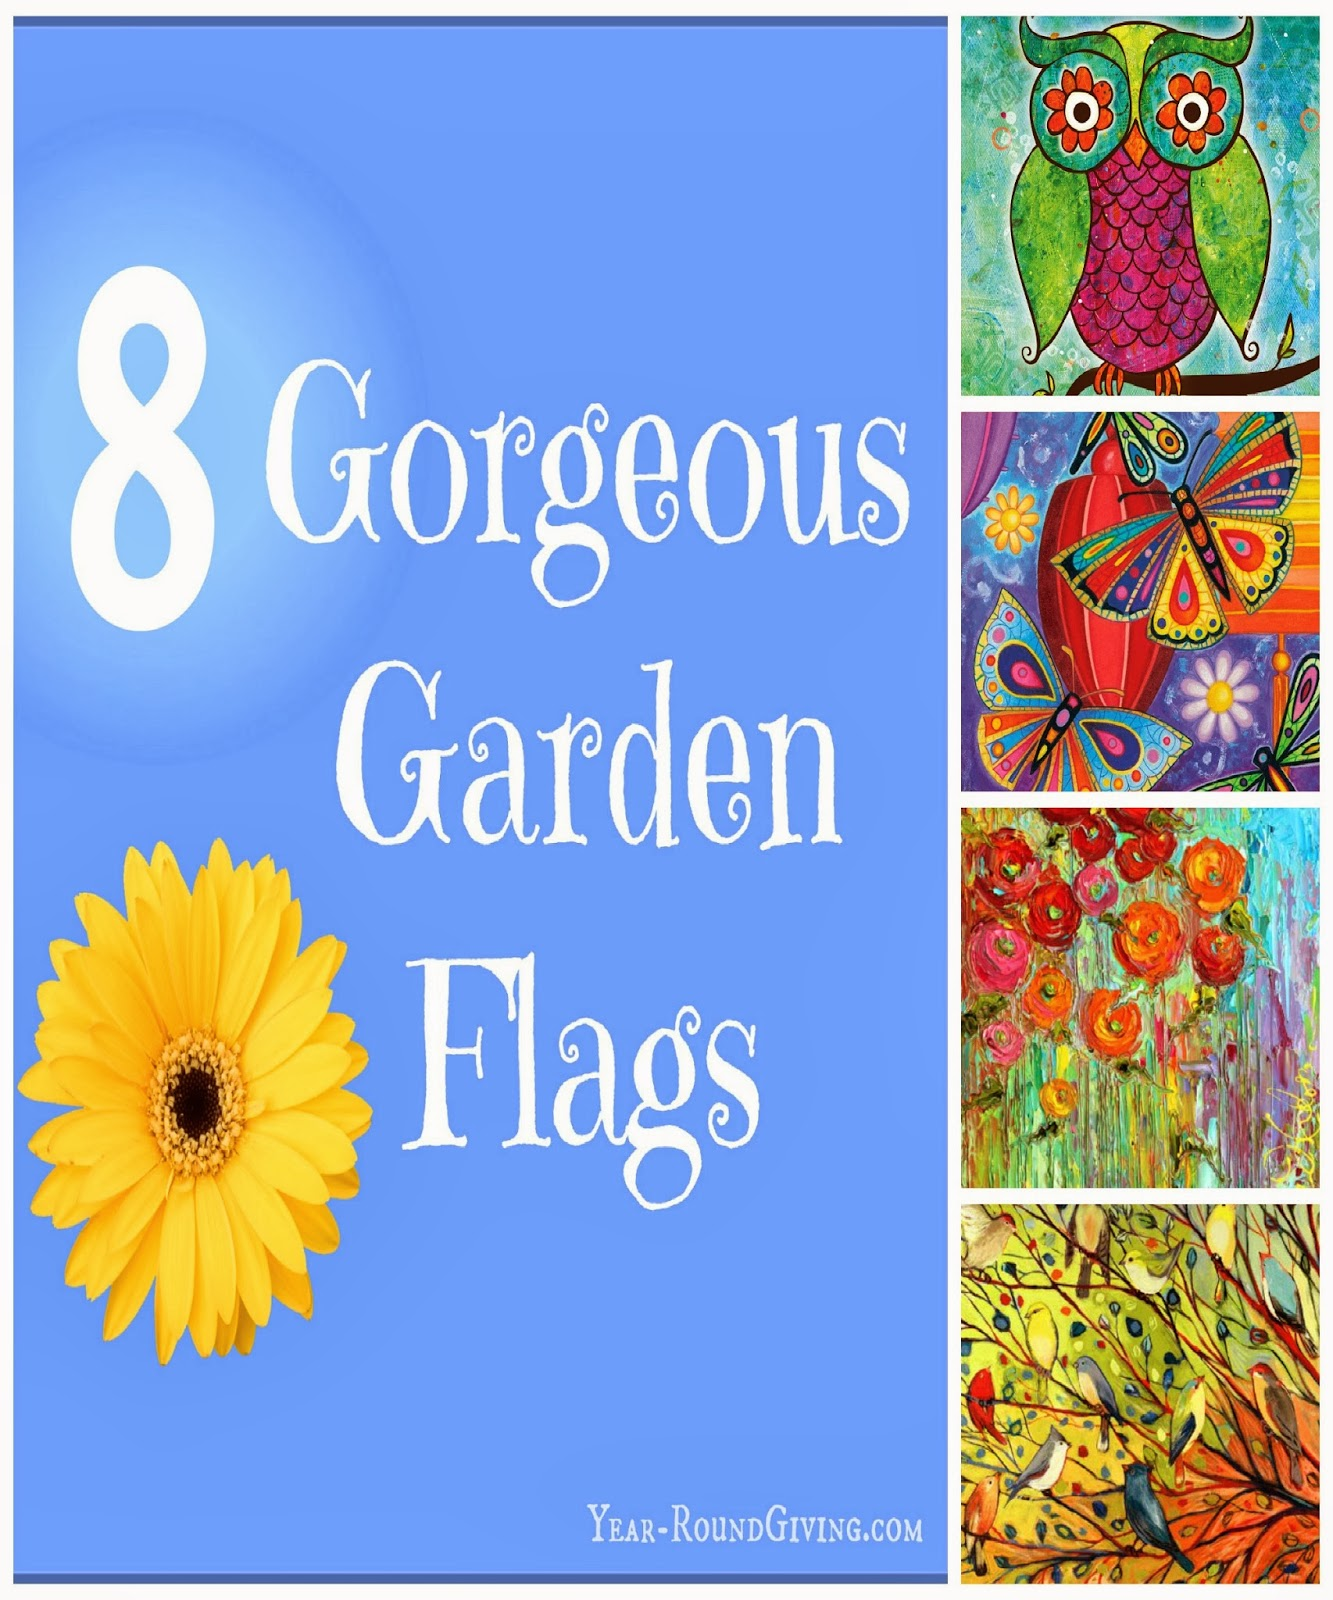 8 Gorgeous Garden Flags